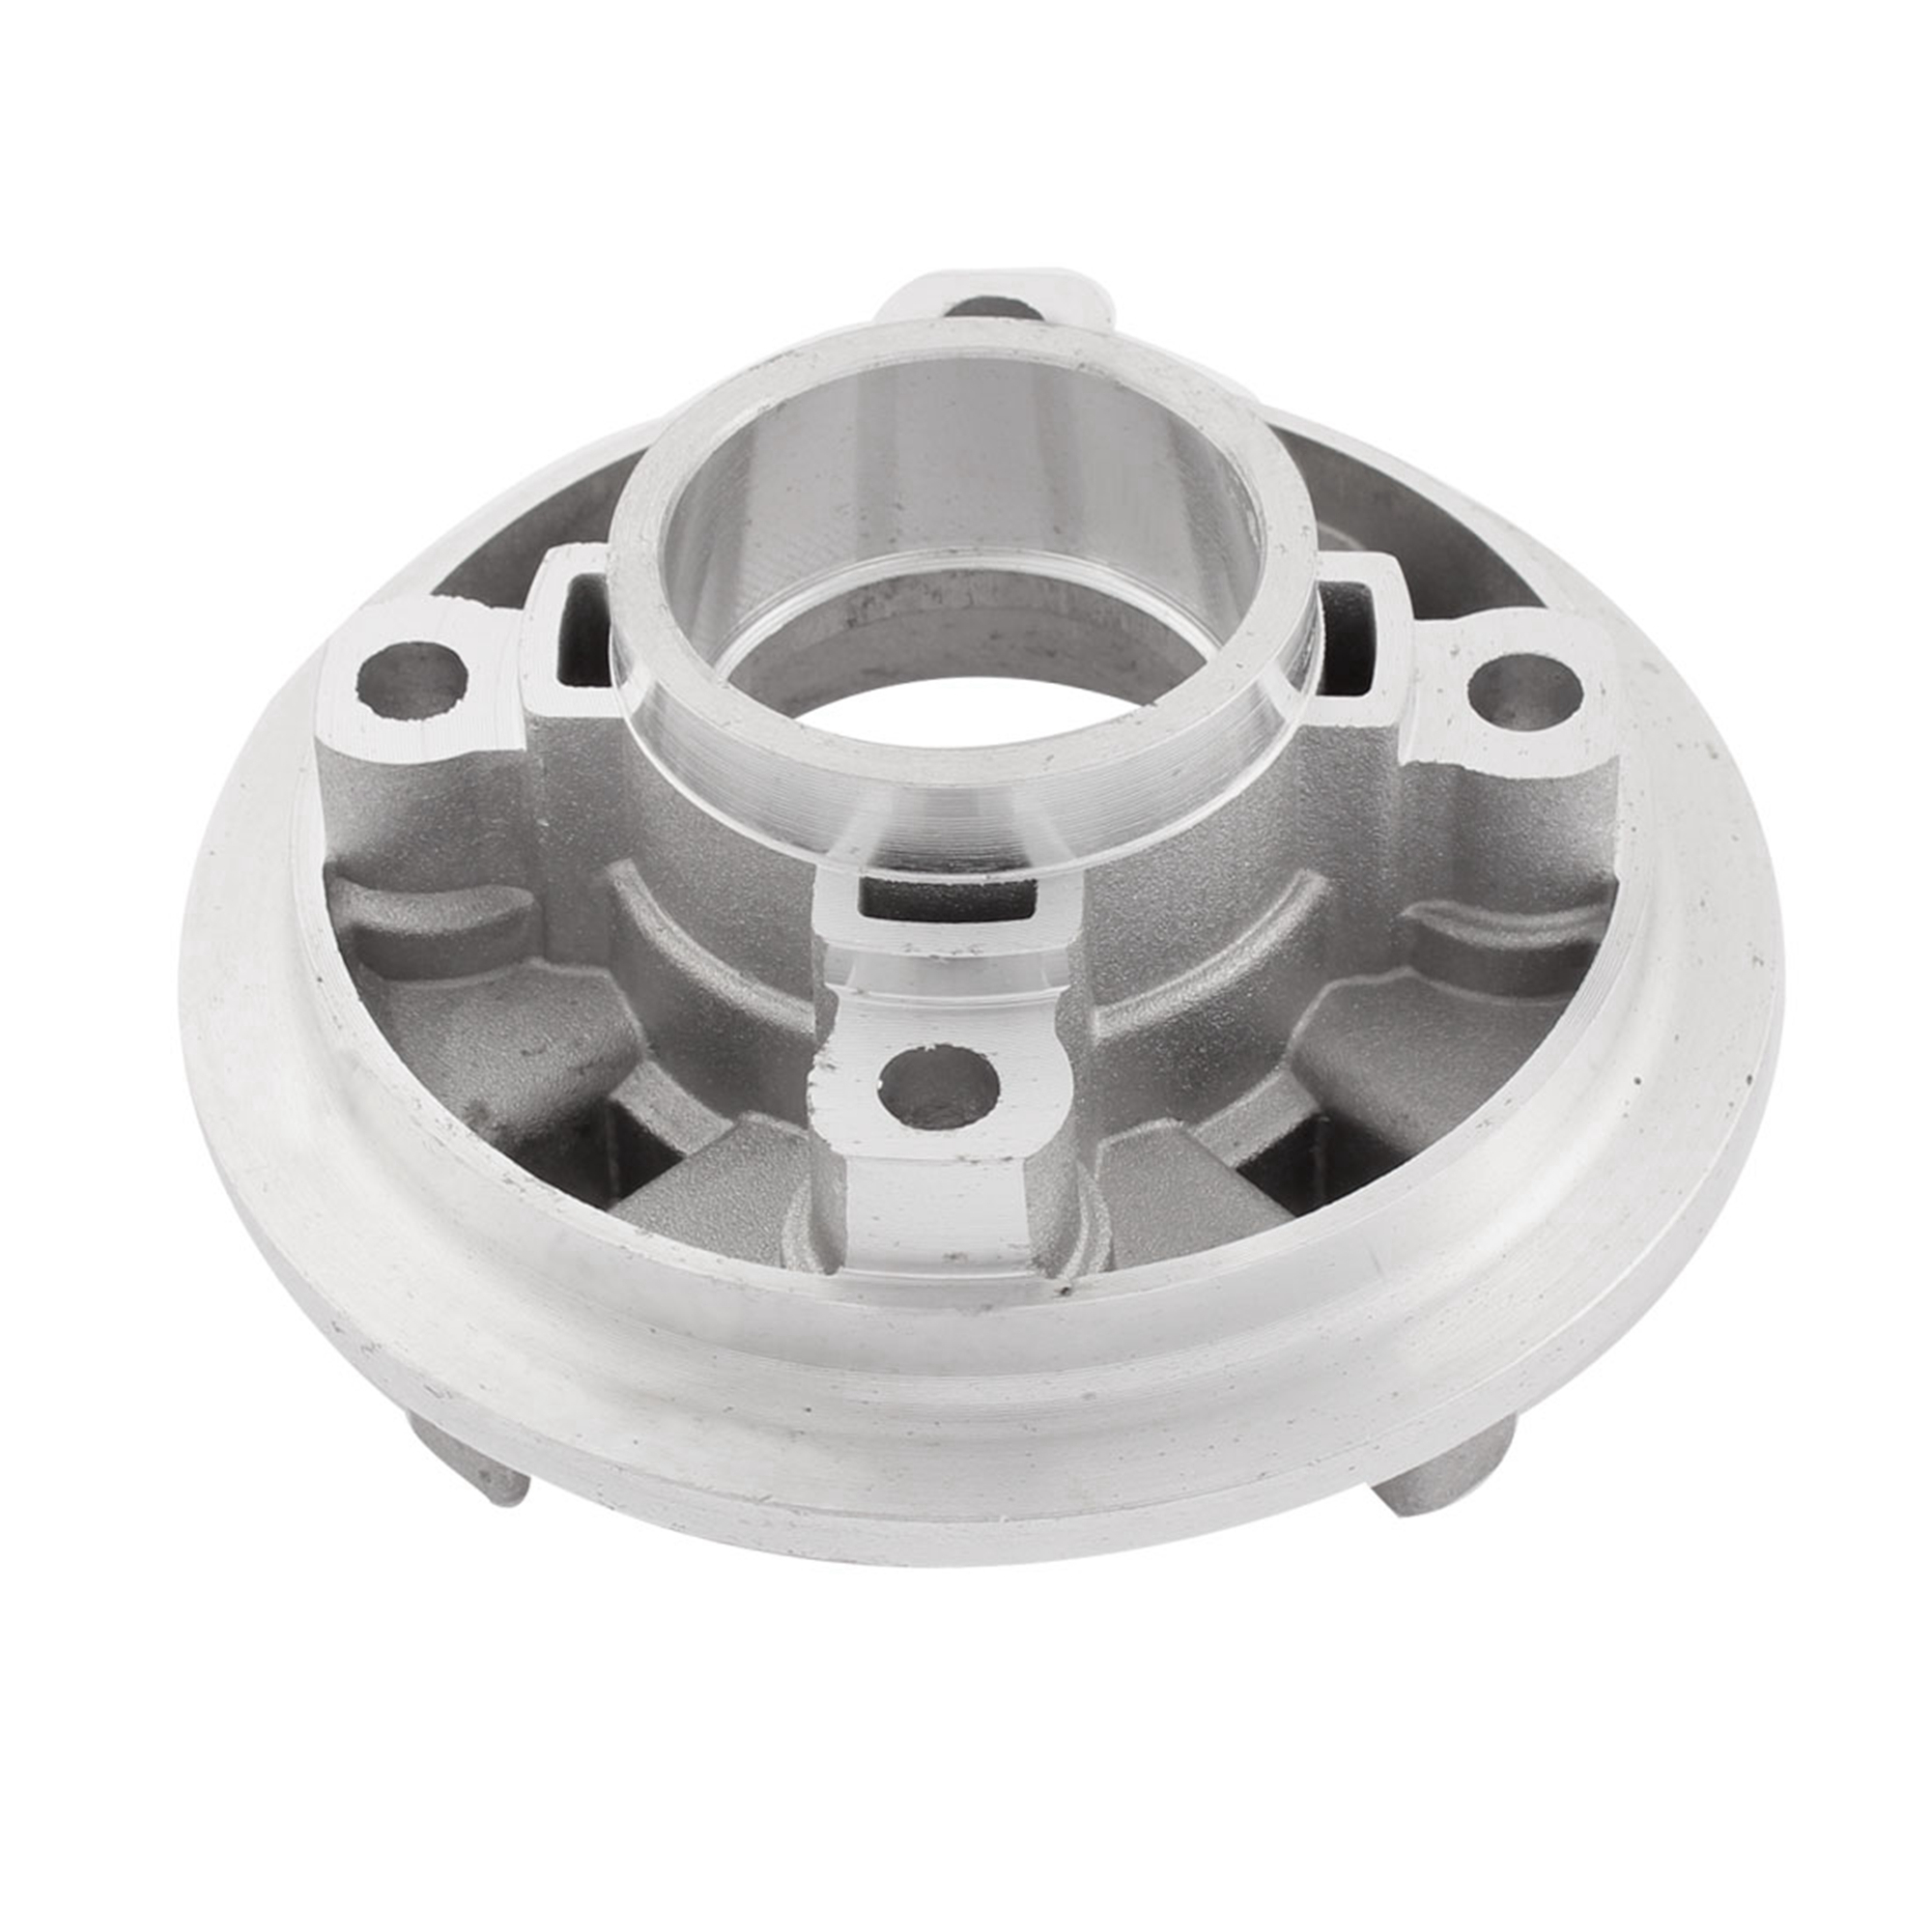 Rear Wheel Driving Sprocket Mounting Hub Adapter Connector for Motorcycle 80